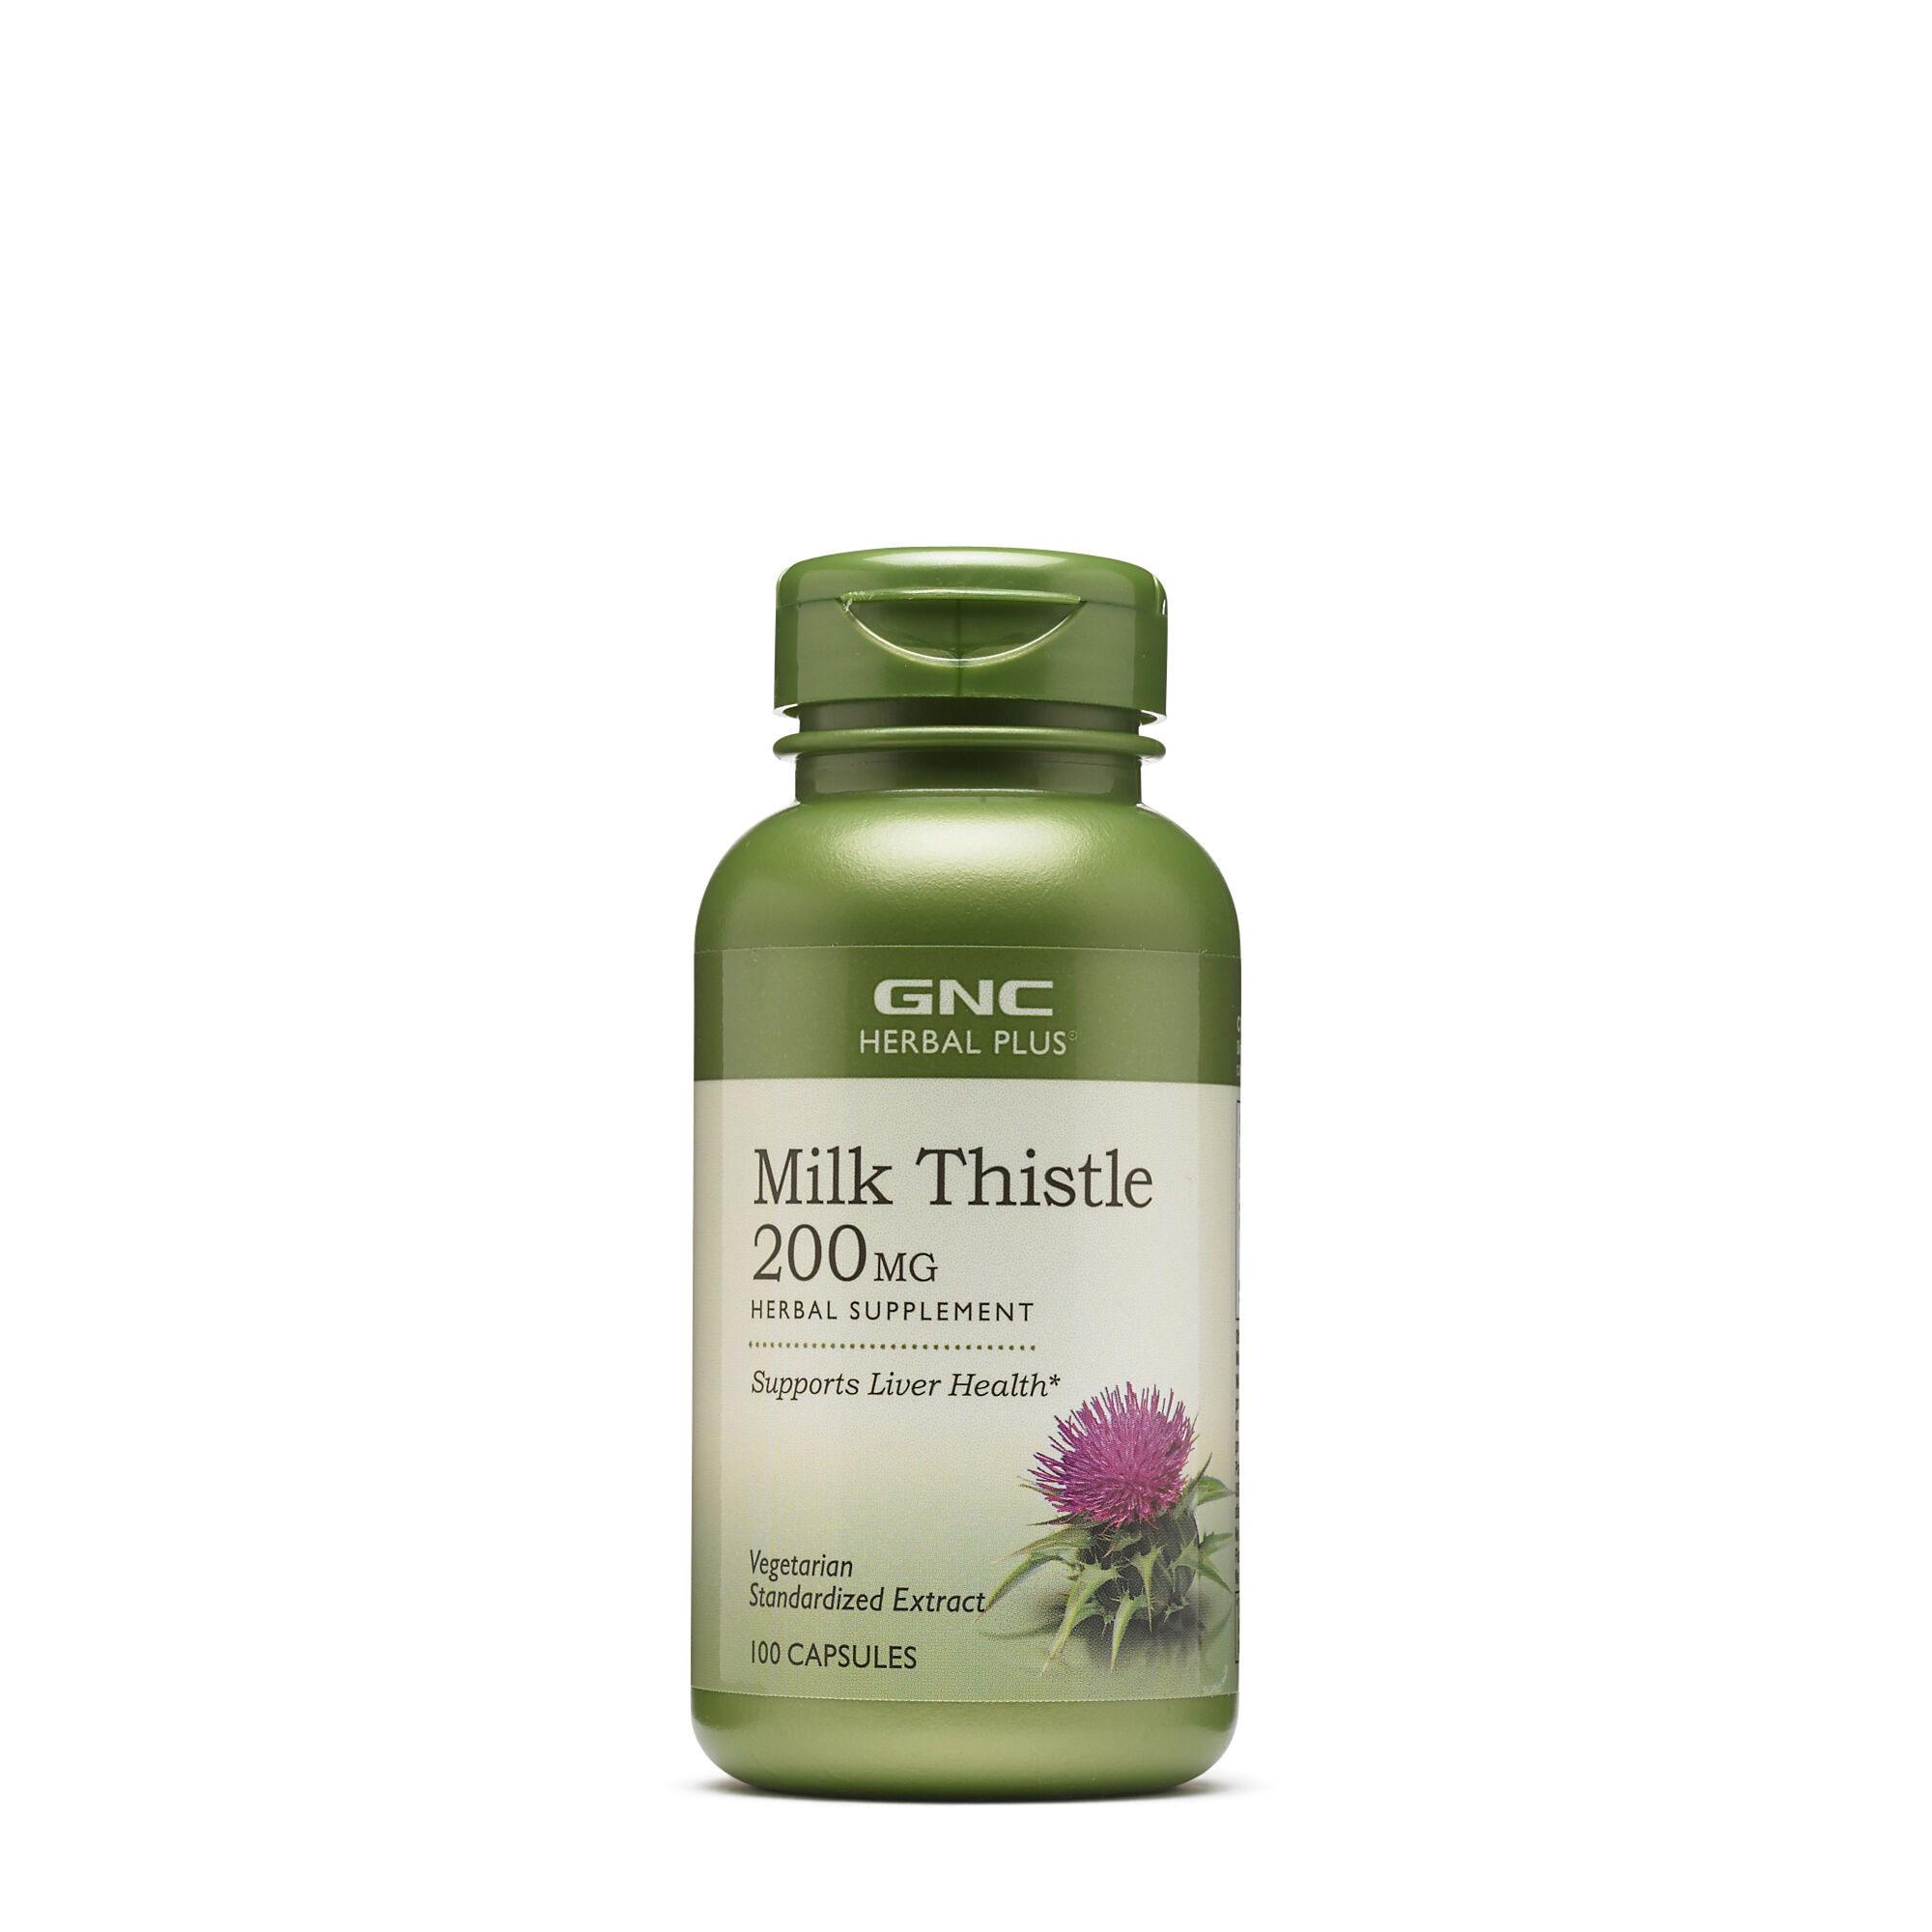 GNC밀크씨슬 Herbal Plus Milk Thistle 200 MG